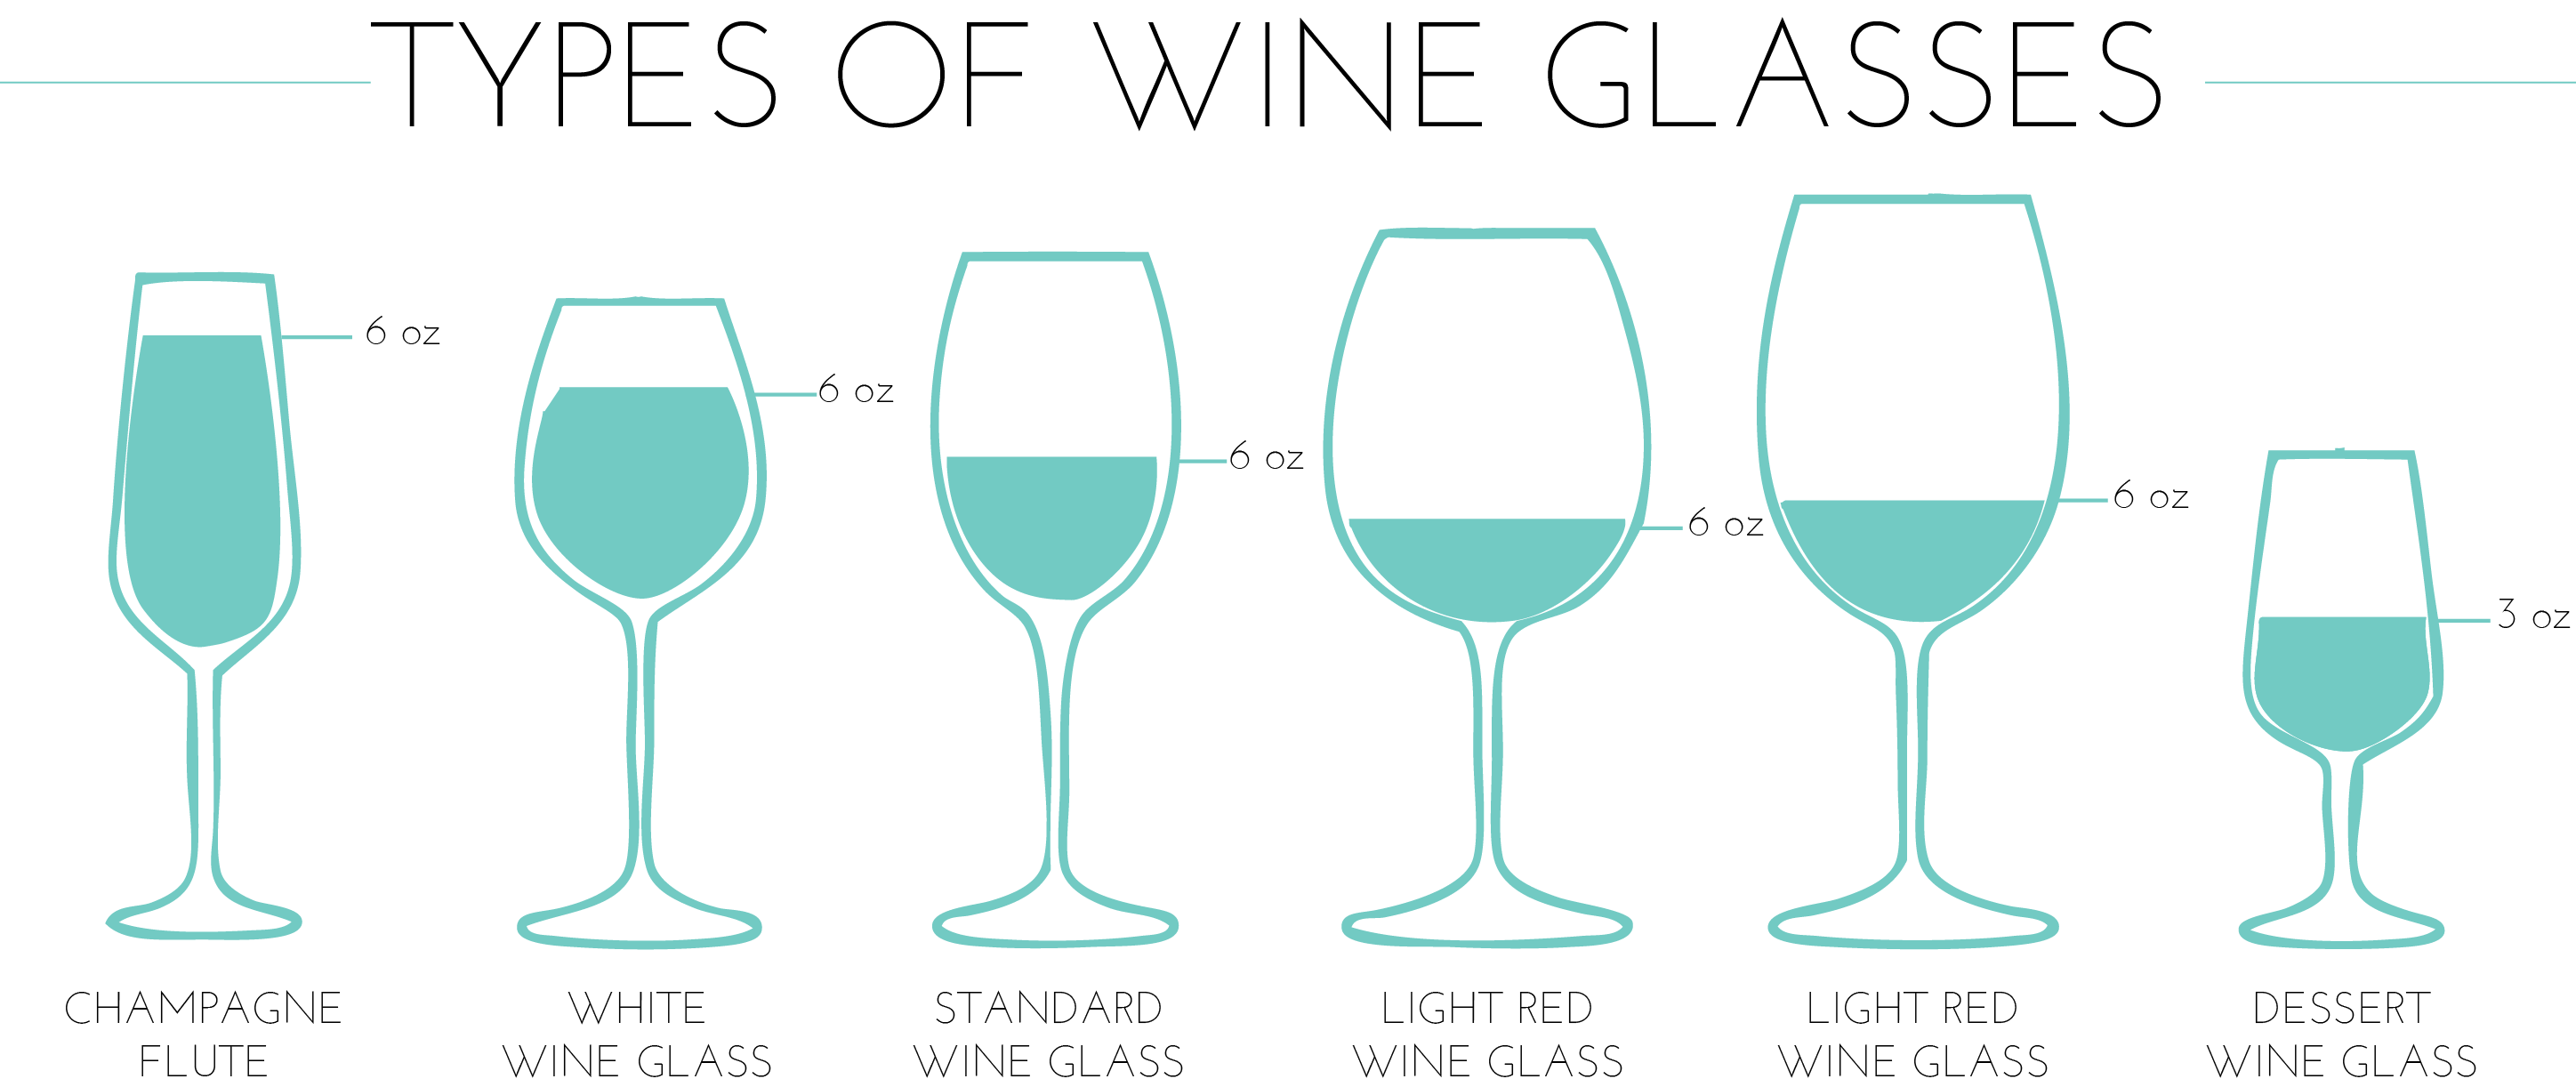 Small Stem Wine Glasses Graphic Wnmdc Types Of Wine Glasses